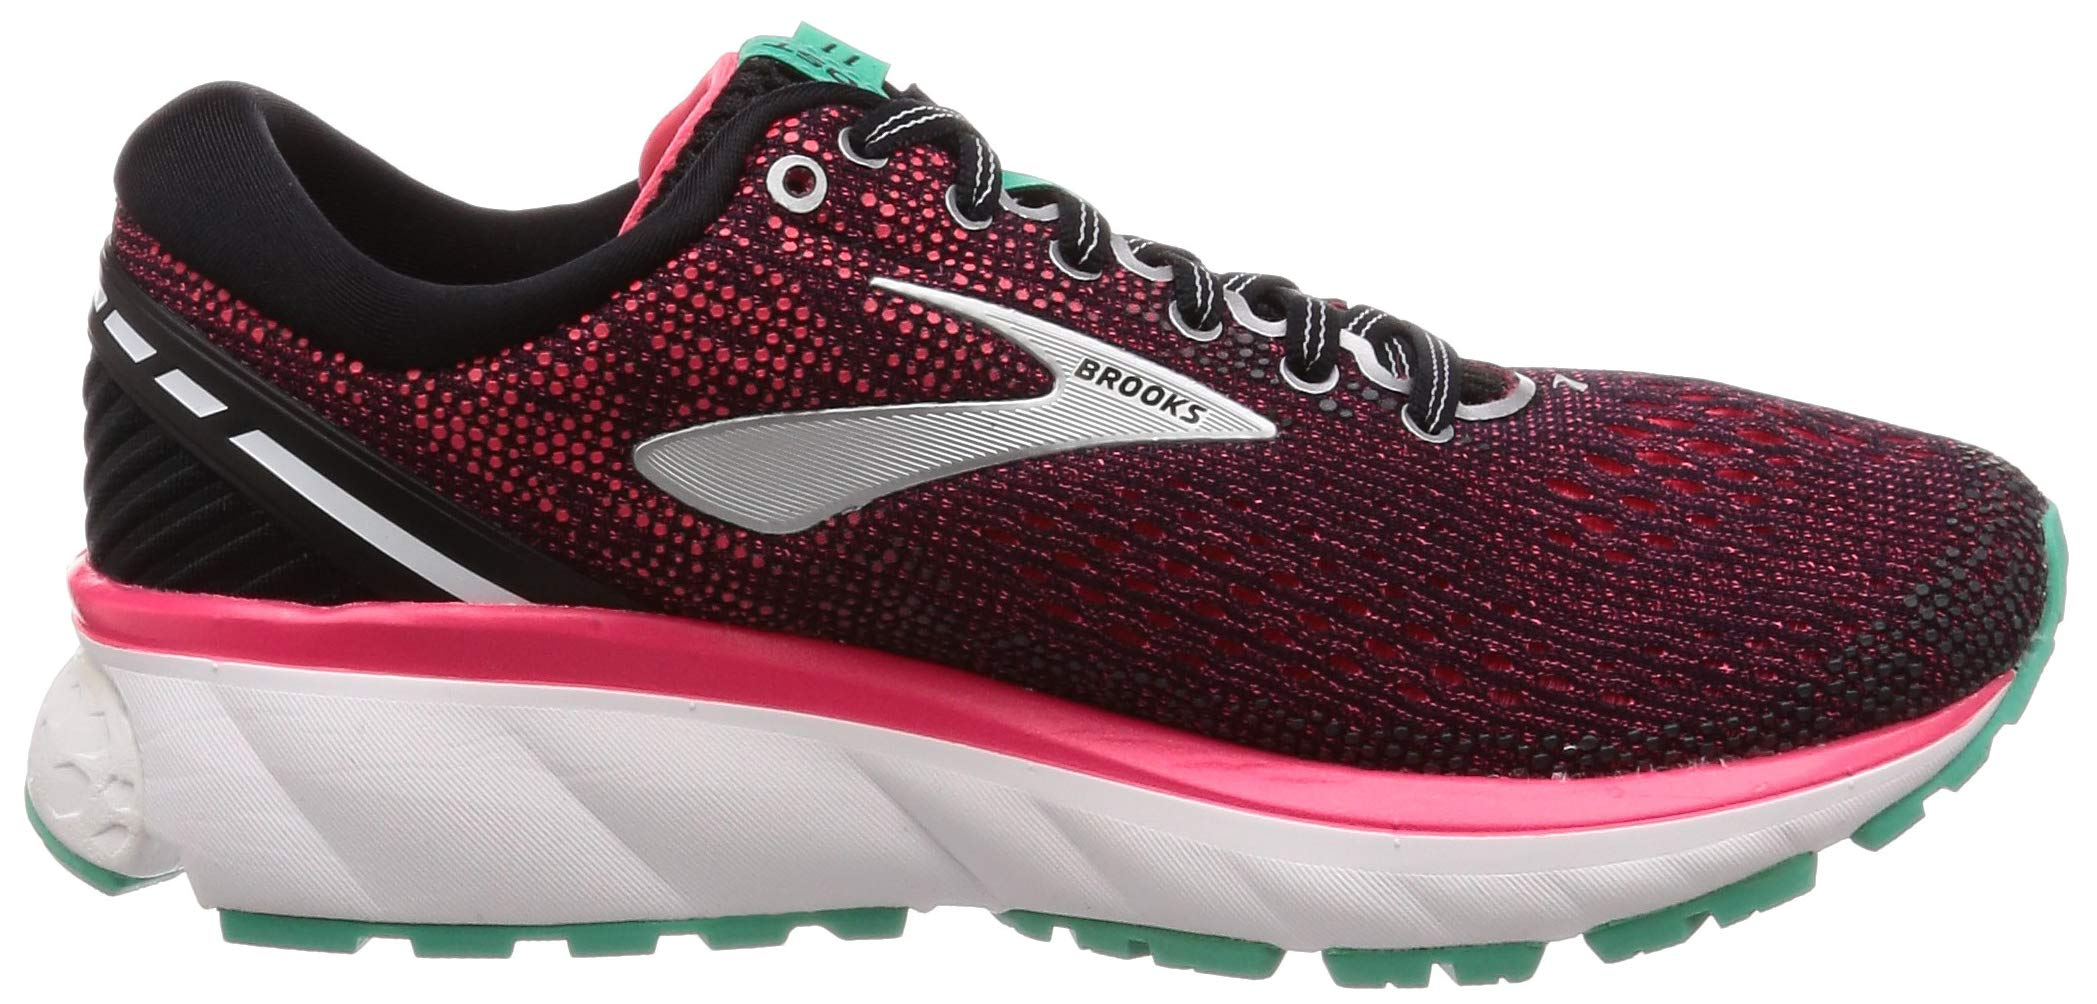 Brooks Womens Ghost 11 Running Shoe - Black/Pink/Aqua - D - 5.5 by Brooks (Image #6)